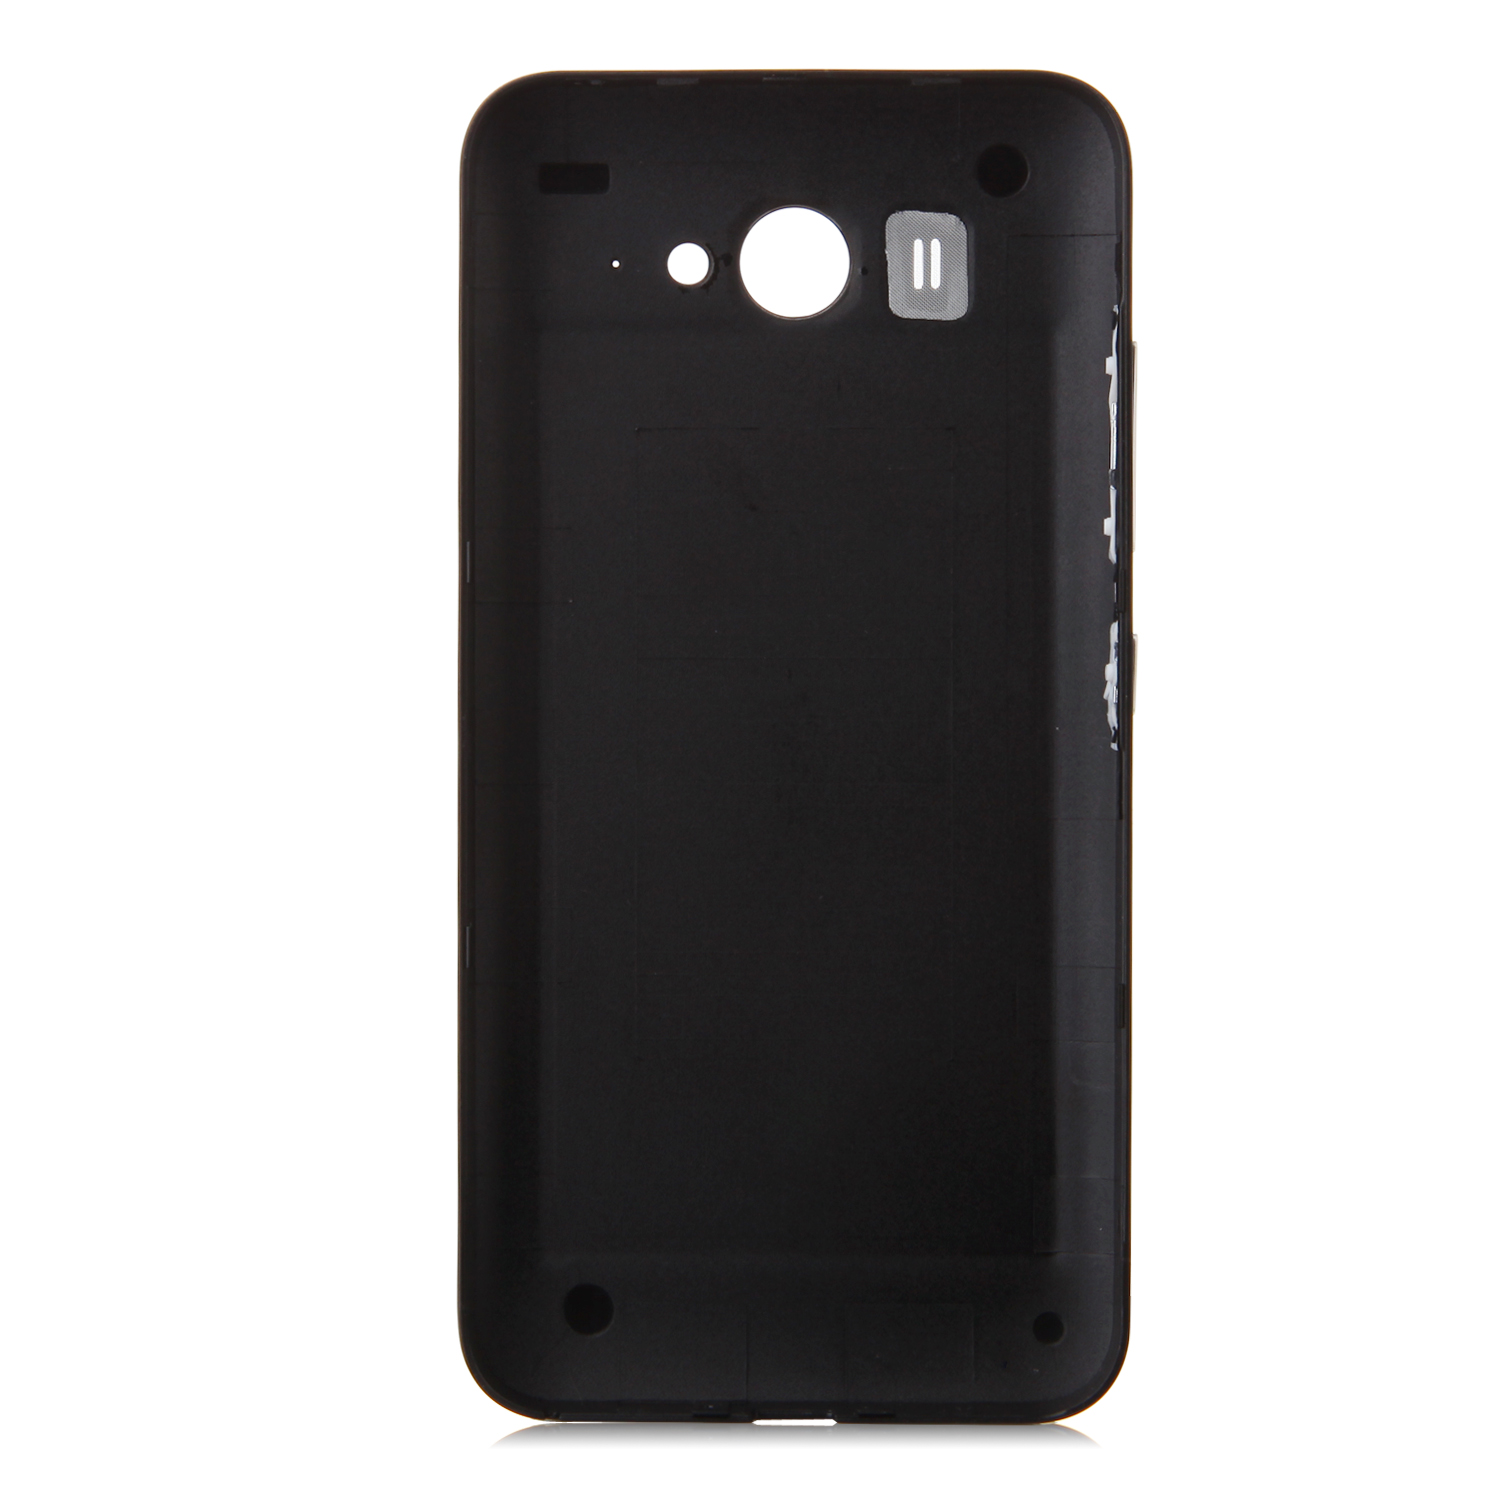 Replacement Battery Cover Back Case for XIAOMI 2S Smartphone Black